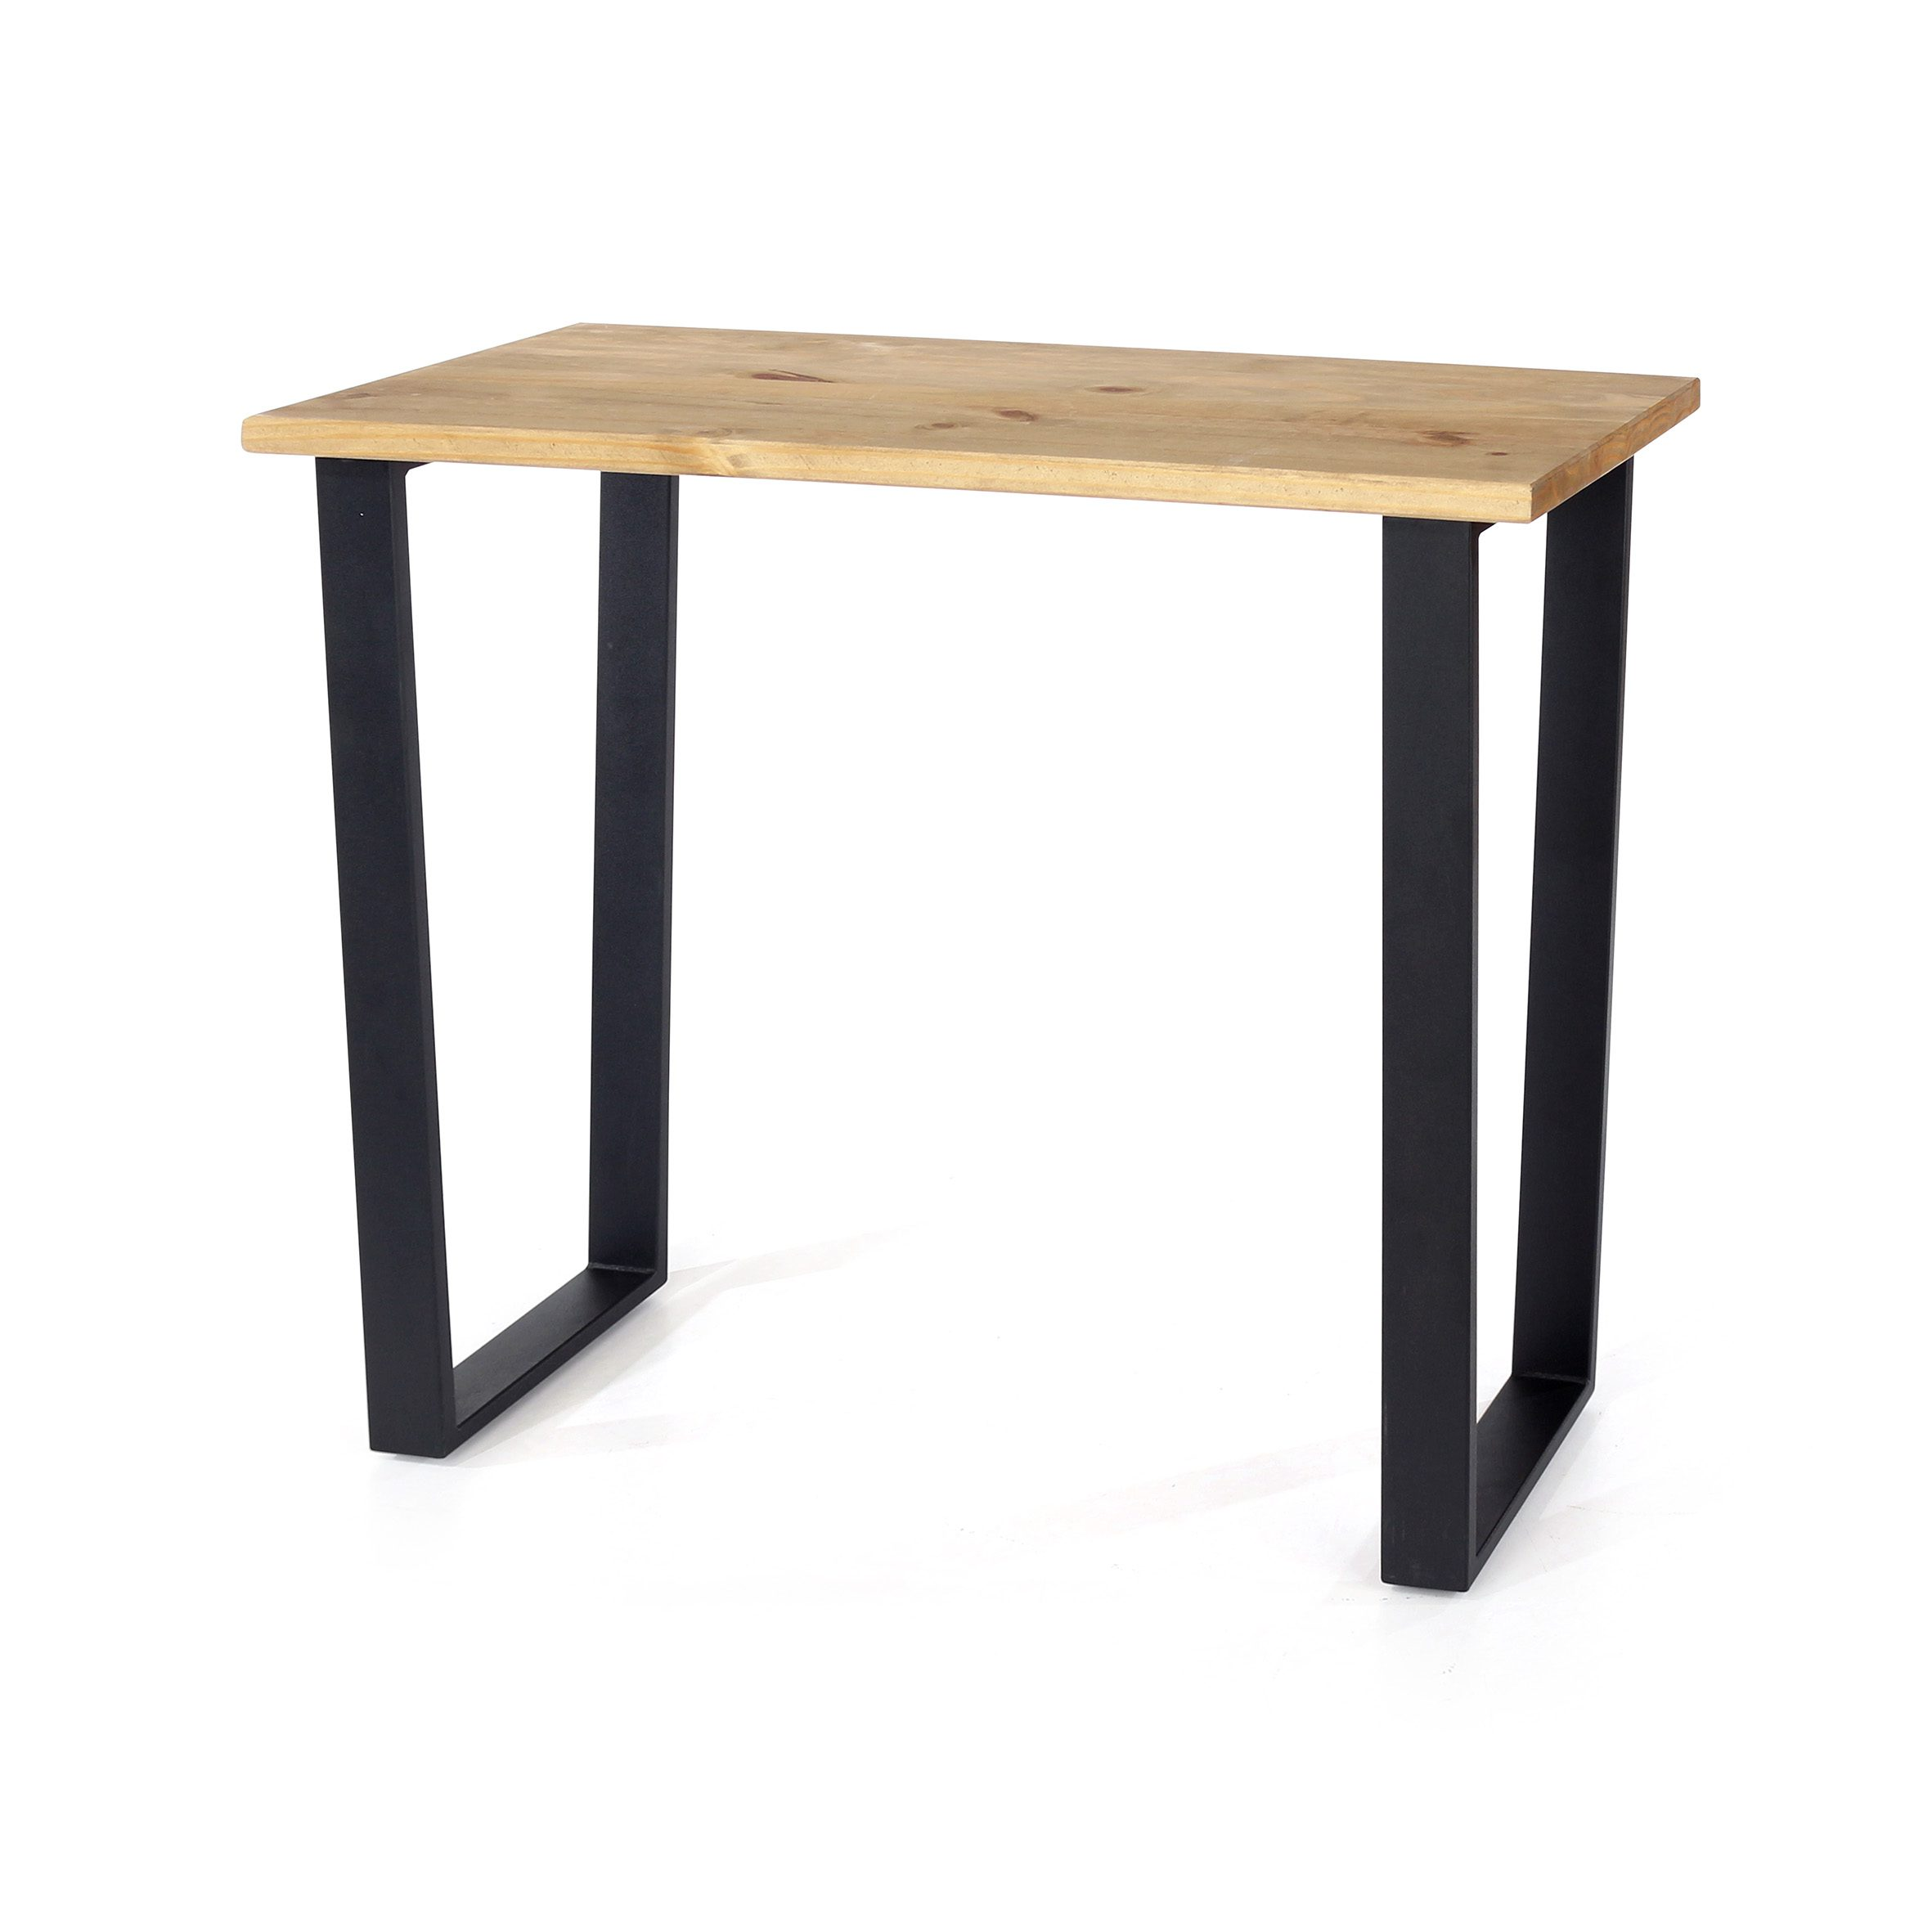 East console table with black metal legs